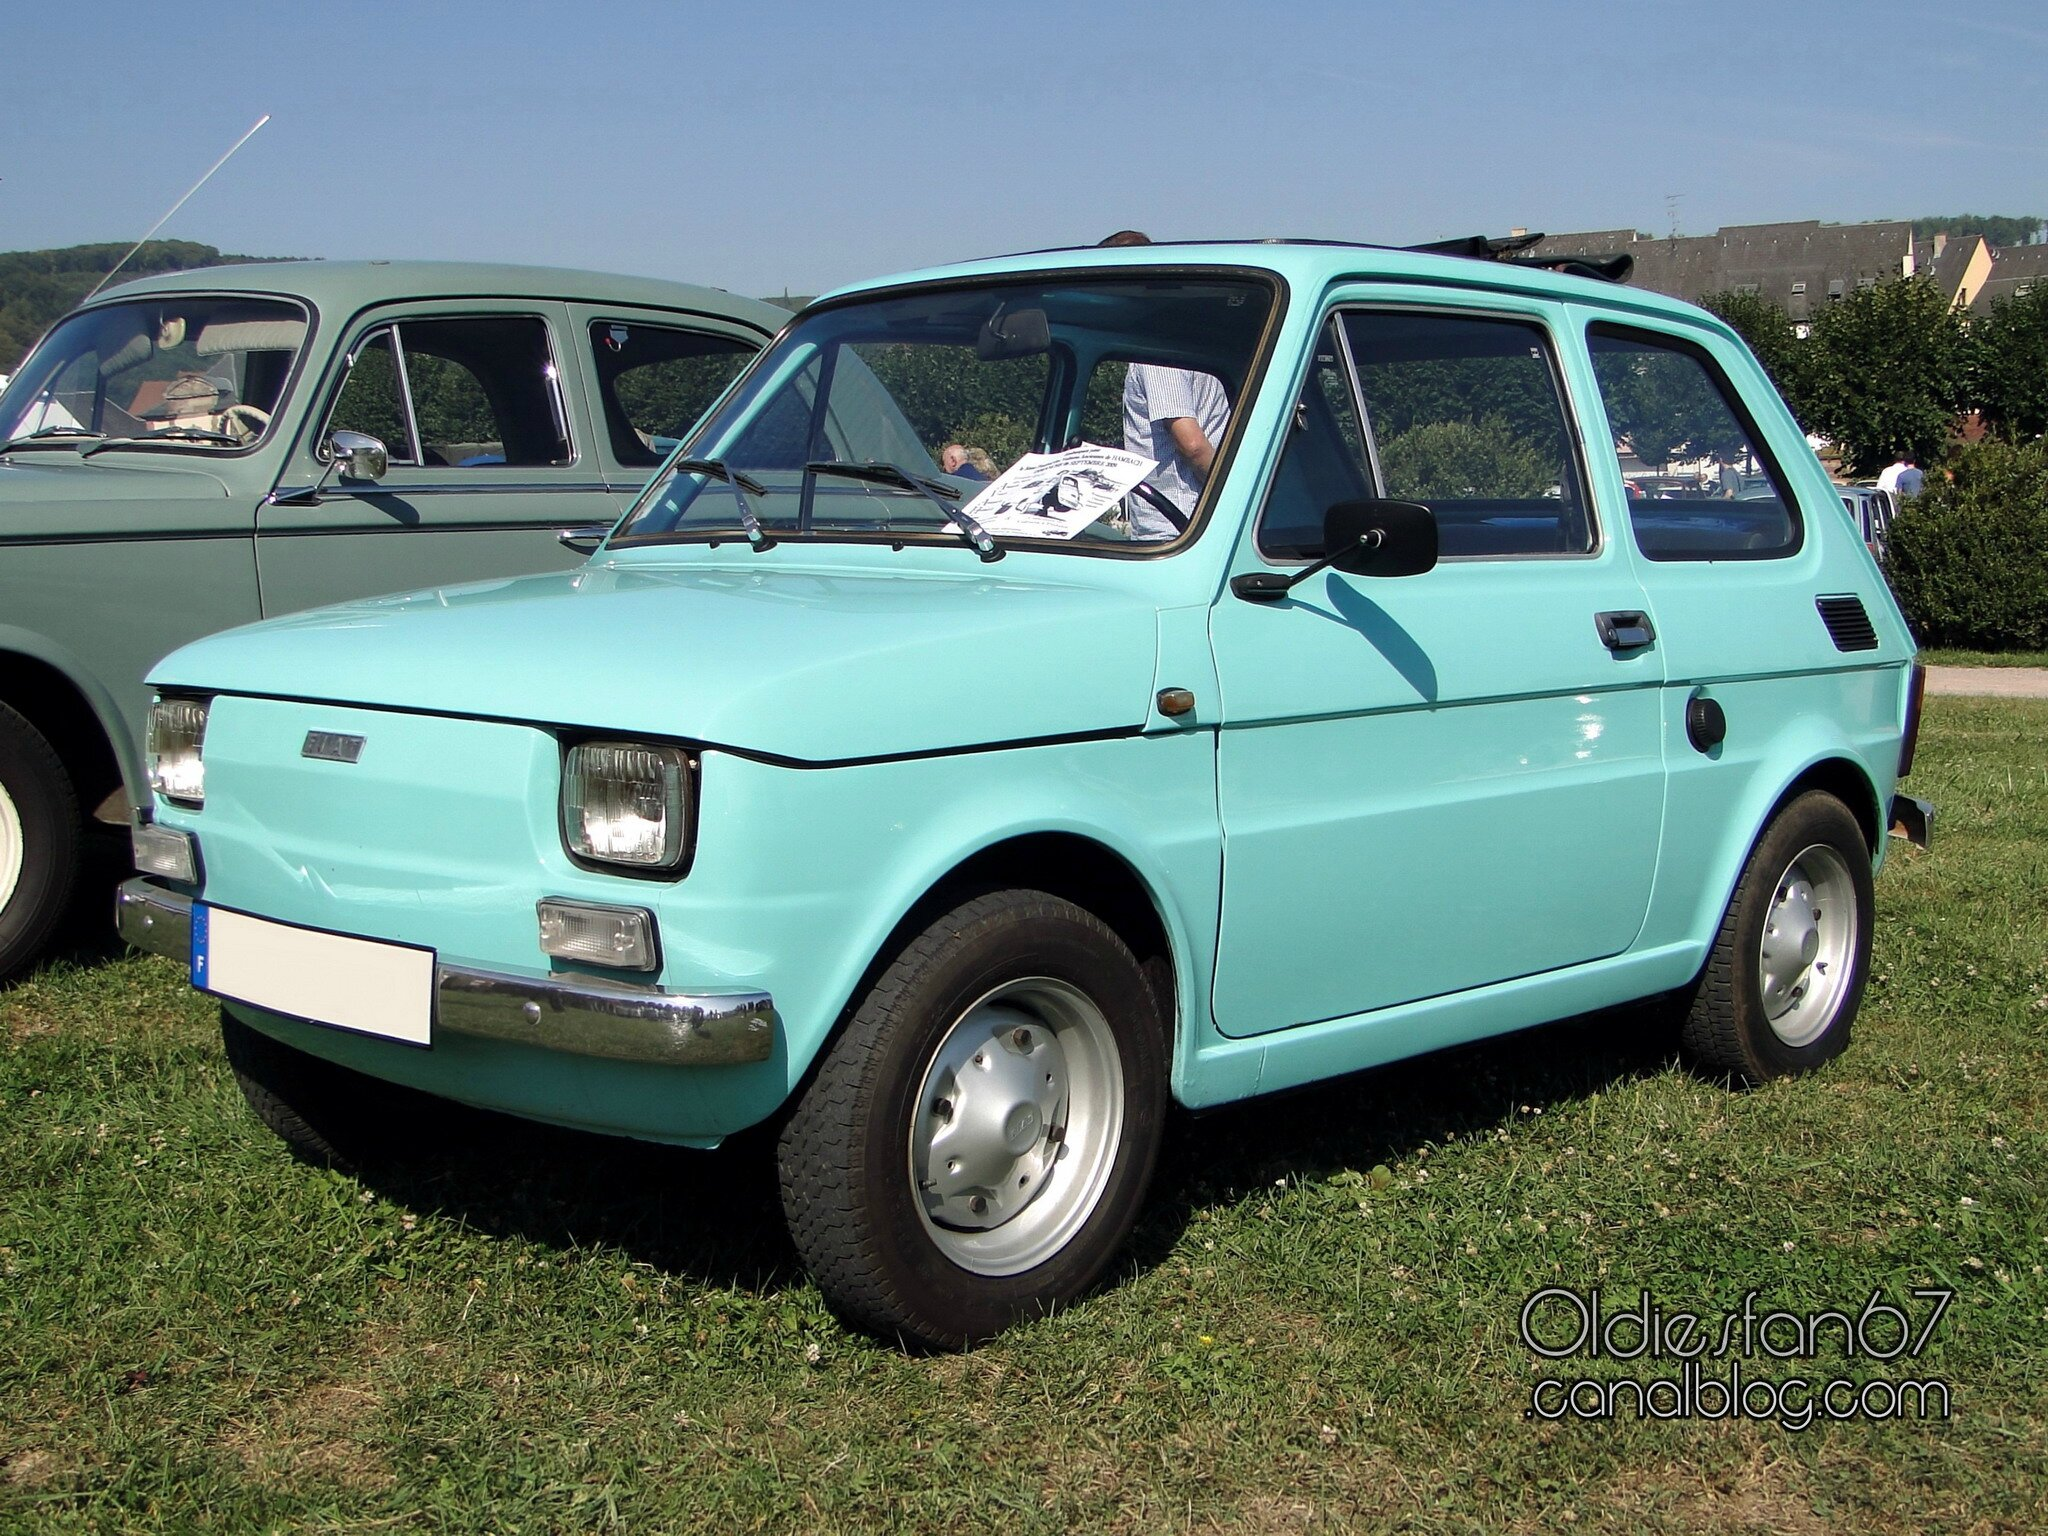 fiat 126 1975 oldiesfan67 mon blog auto. Black Bedroom Furniture Sets. Home Design Ideas